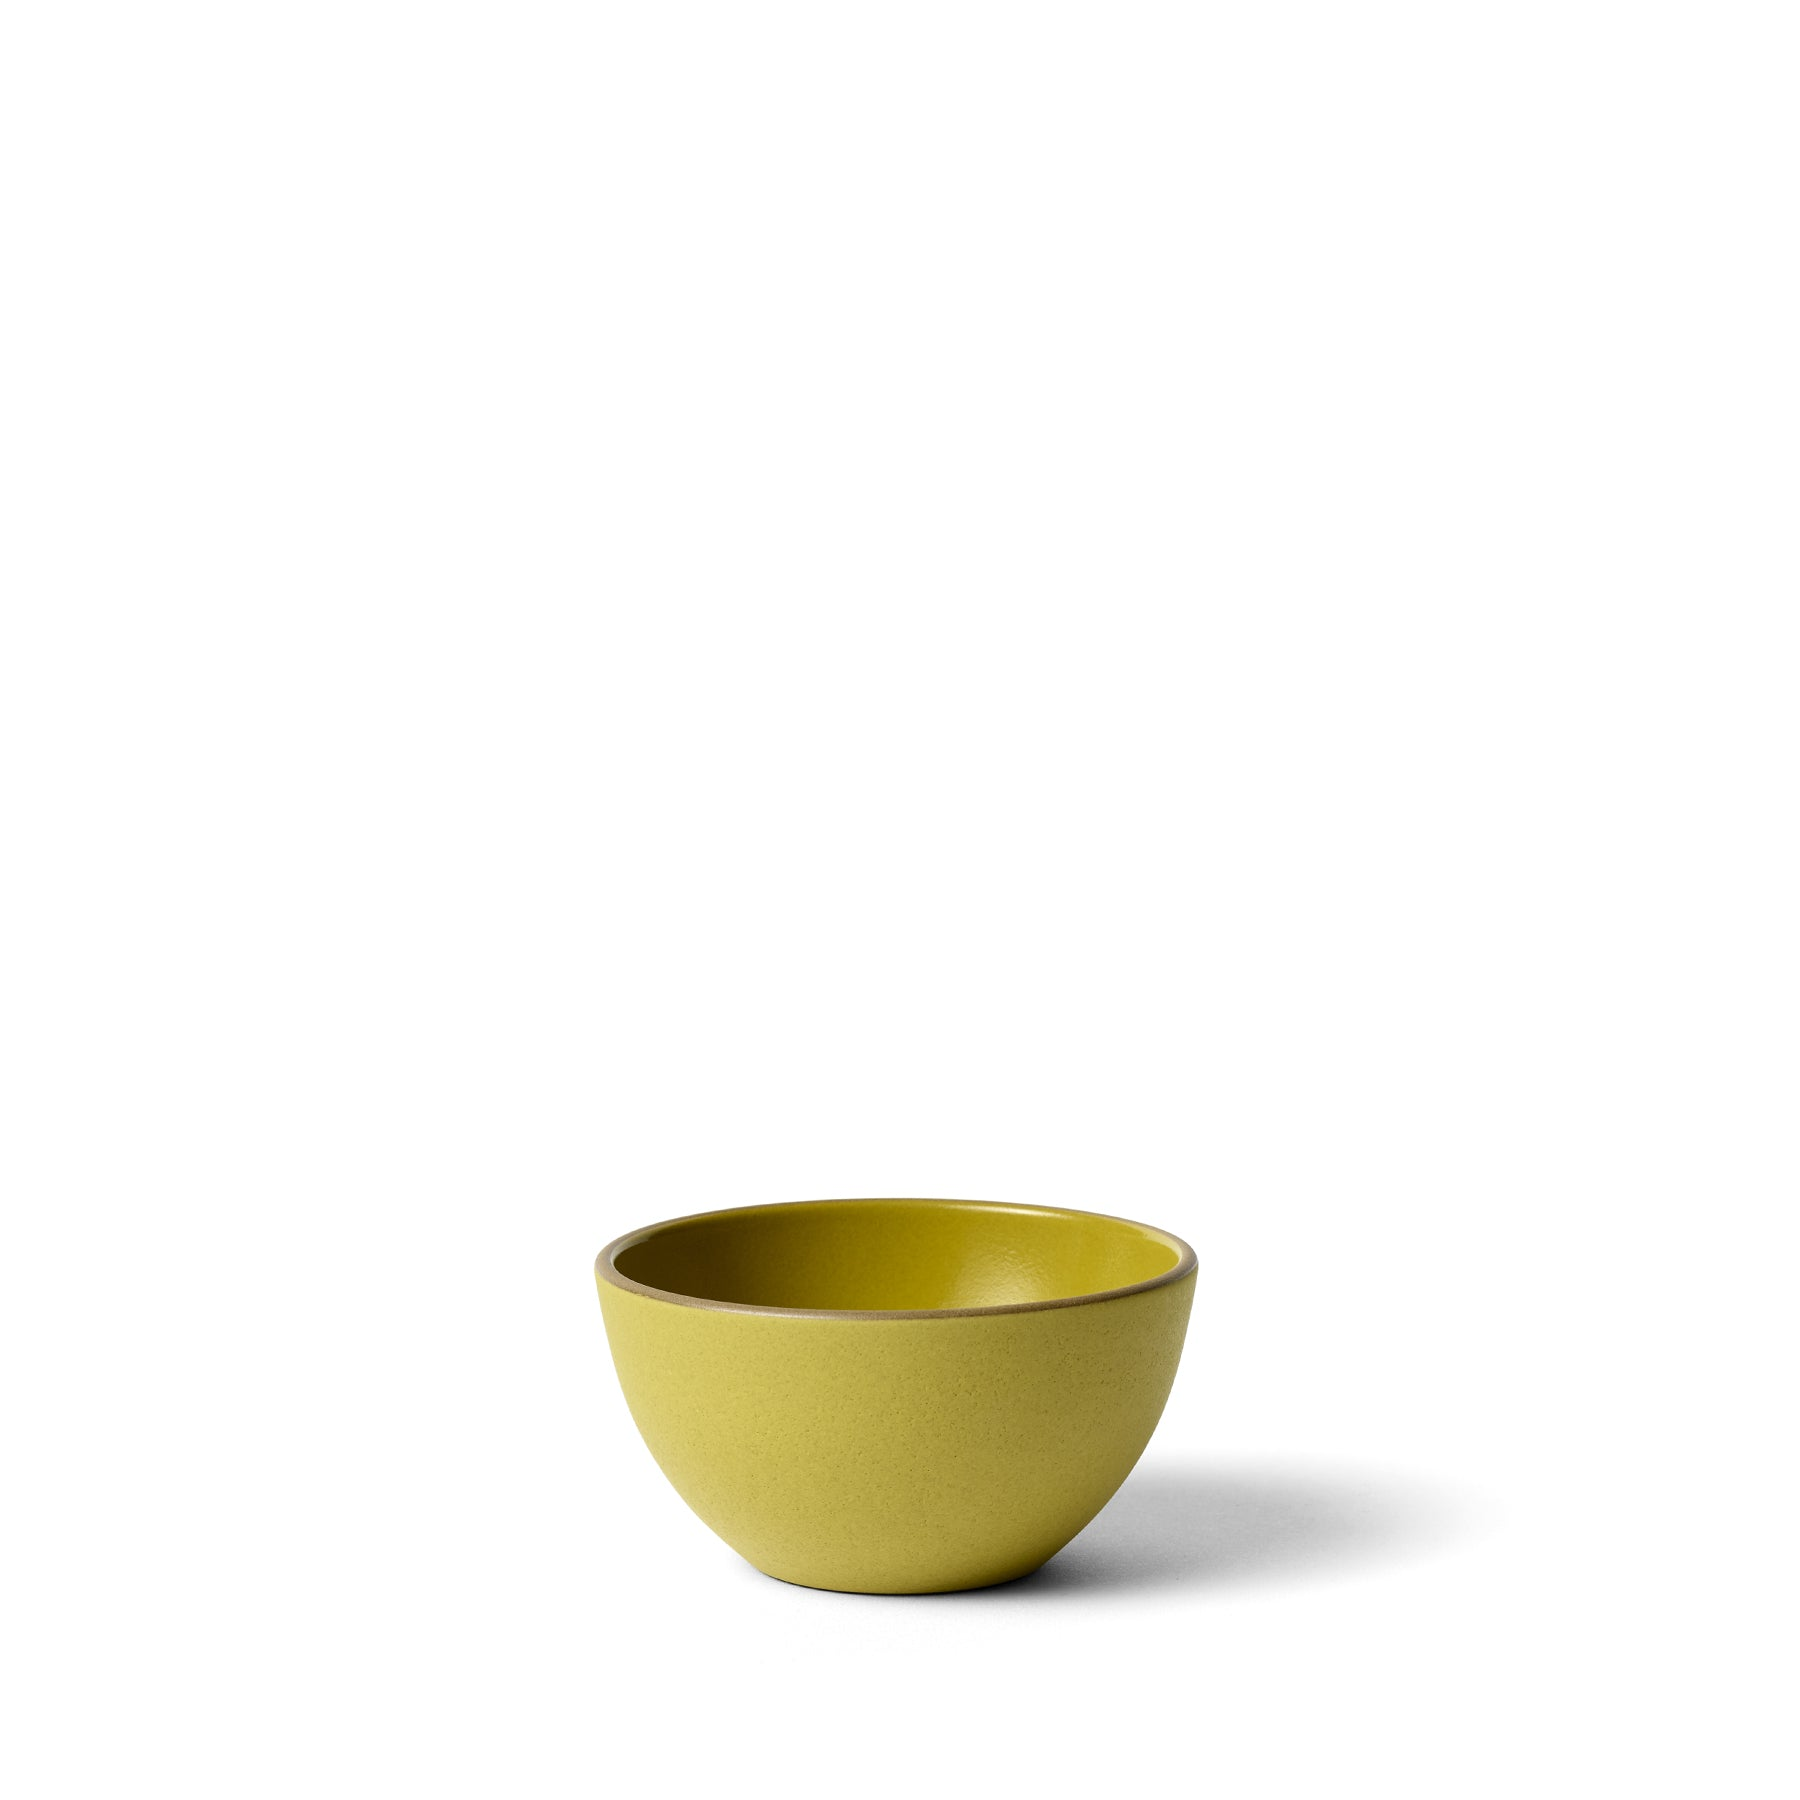 Dessert Bowl in Canary Gloss/Canary Zoom Image 1